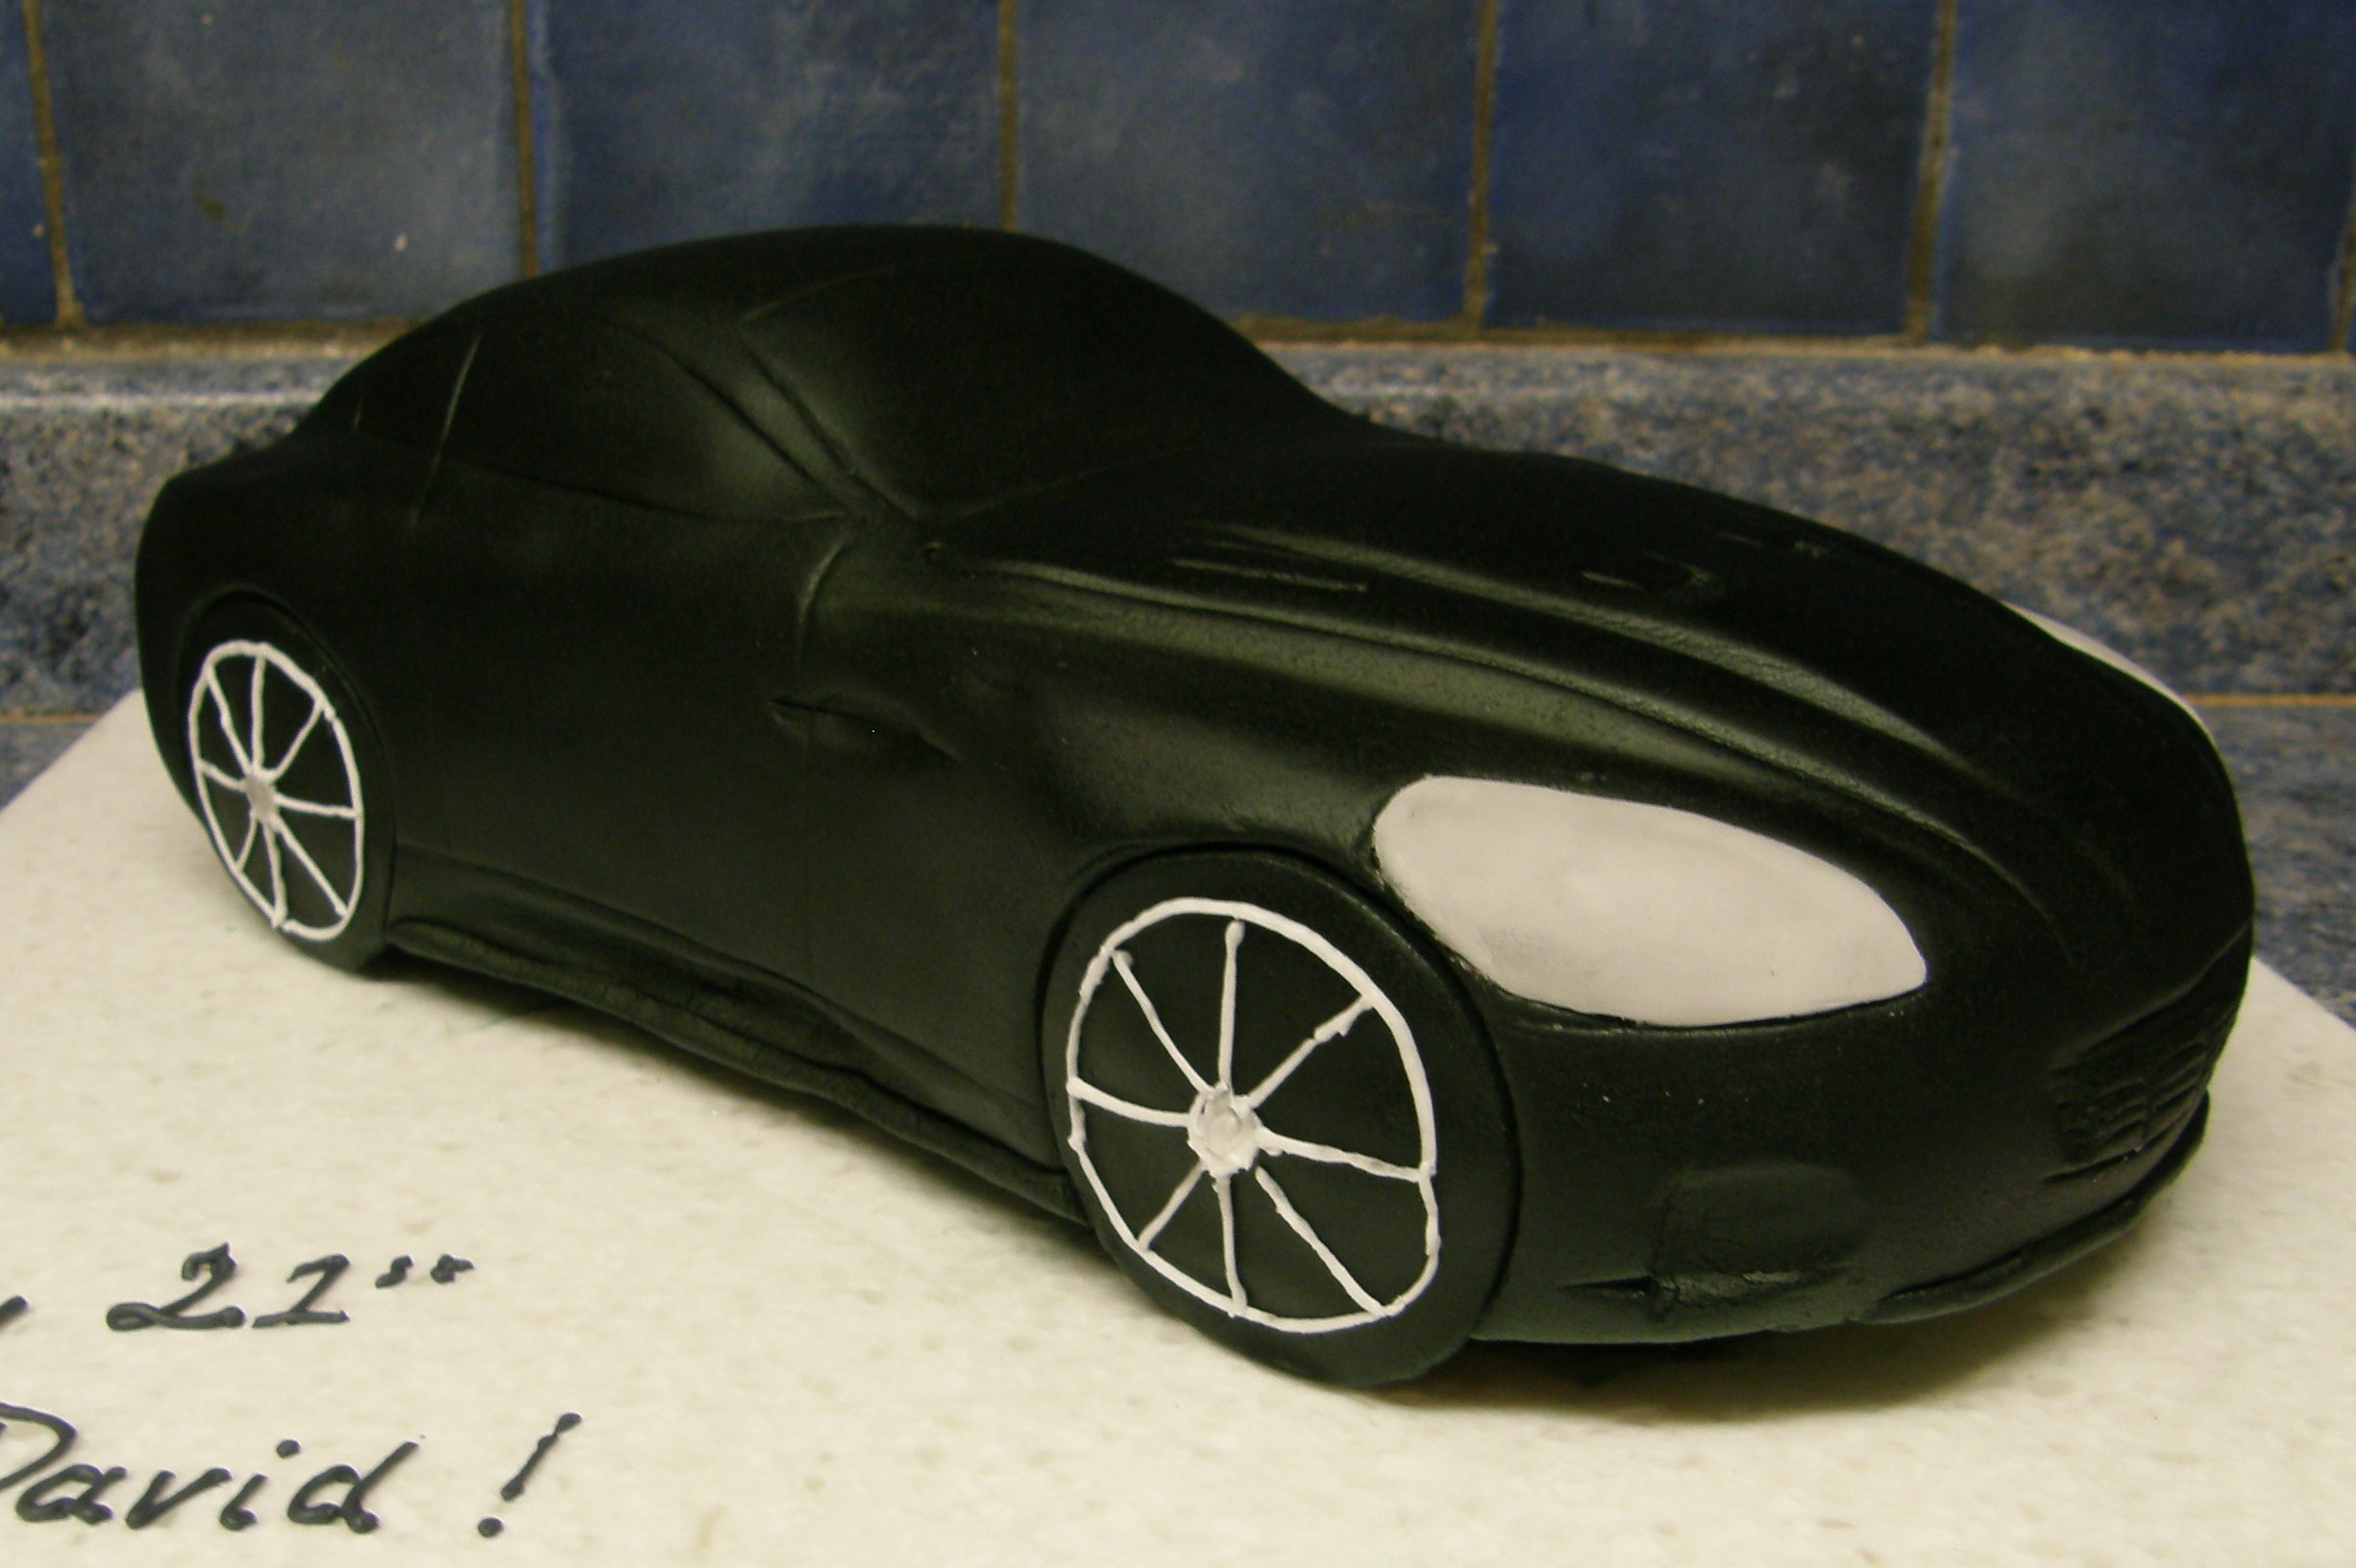 Aston Martin Dbs Cake Decorating Community Cakes We Bake